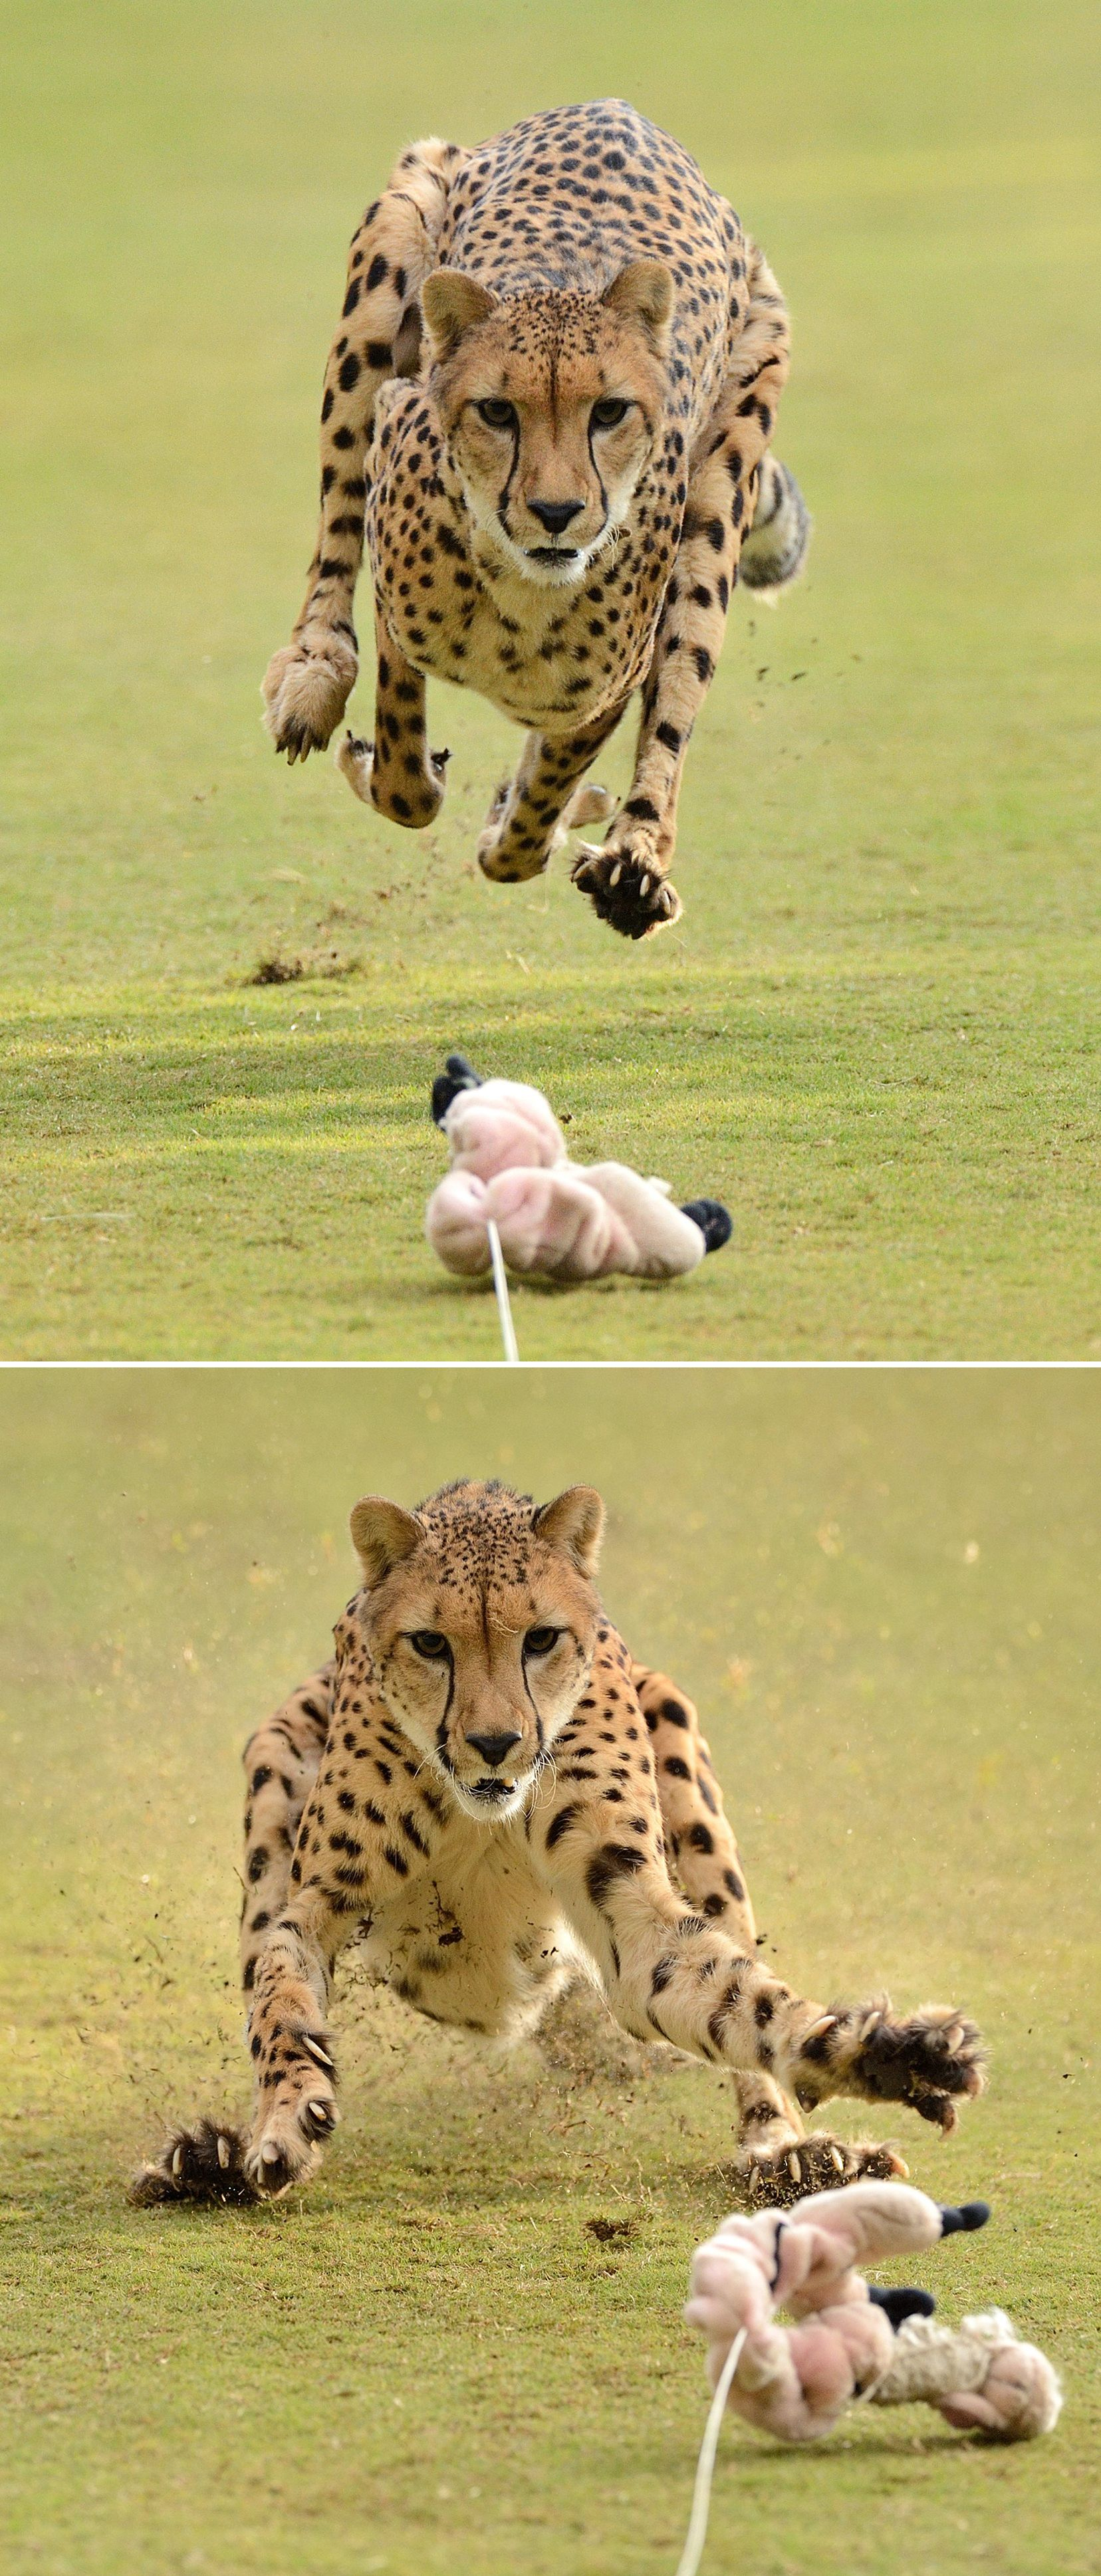 During Cheetah Run, the spotted sprinter races on a straight 330-foot-long track that allows the cheetah to really stretch its legs and reach an astounding speed: 0 to 70 miles per hour in just 4 seconds while chasing a mechanical lure attached to its favorite toy. (photos: Mike Wilson)